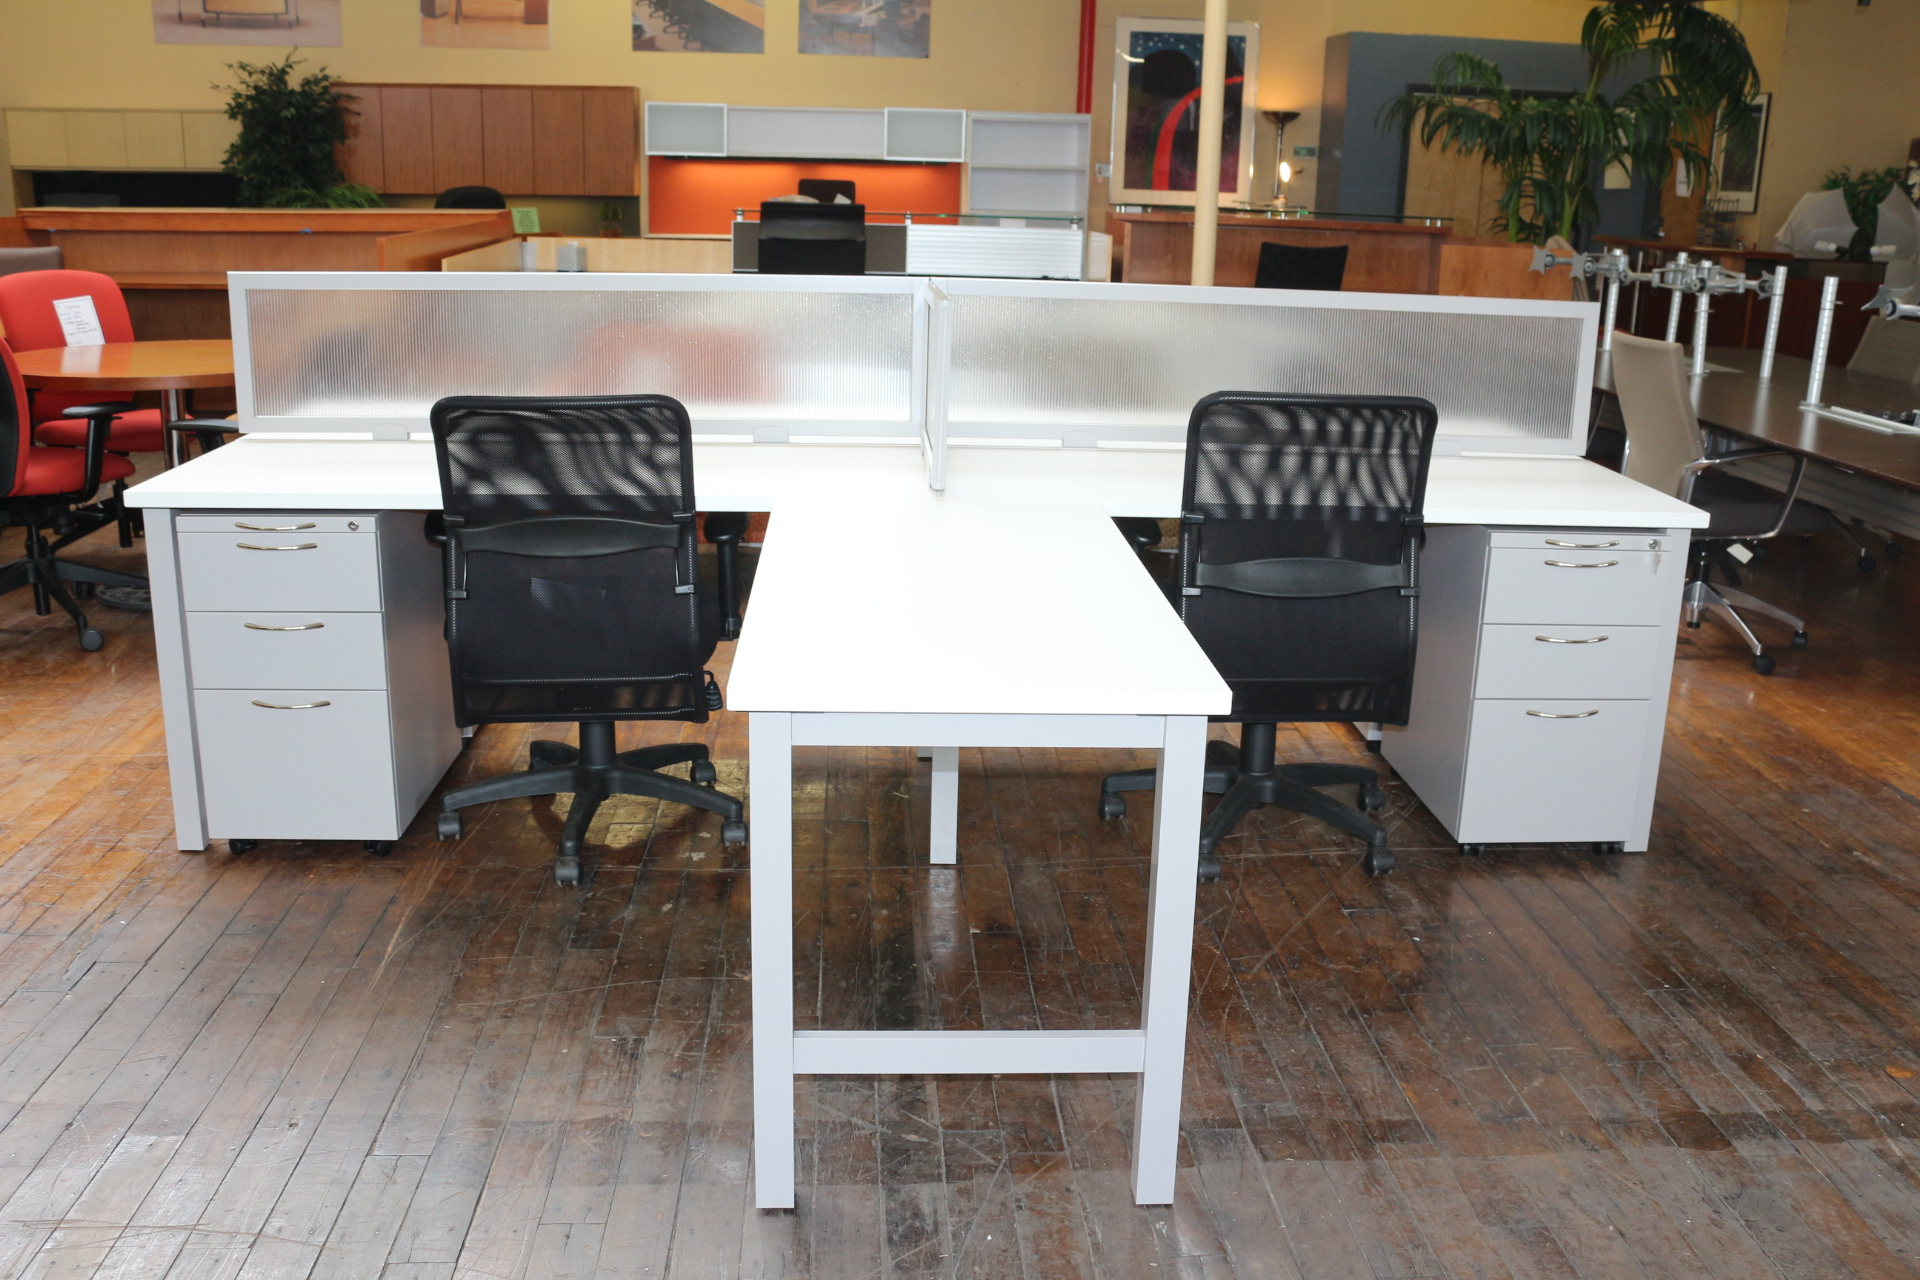 peartreeofficefurniture_peartreeofficefurniture_img_1069.jpg